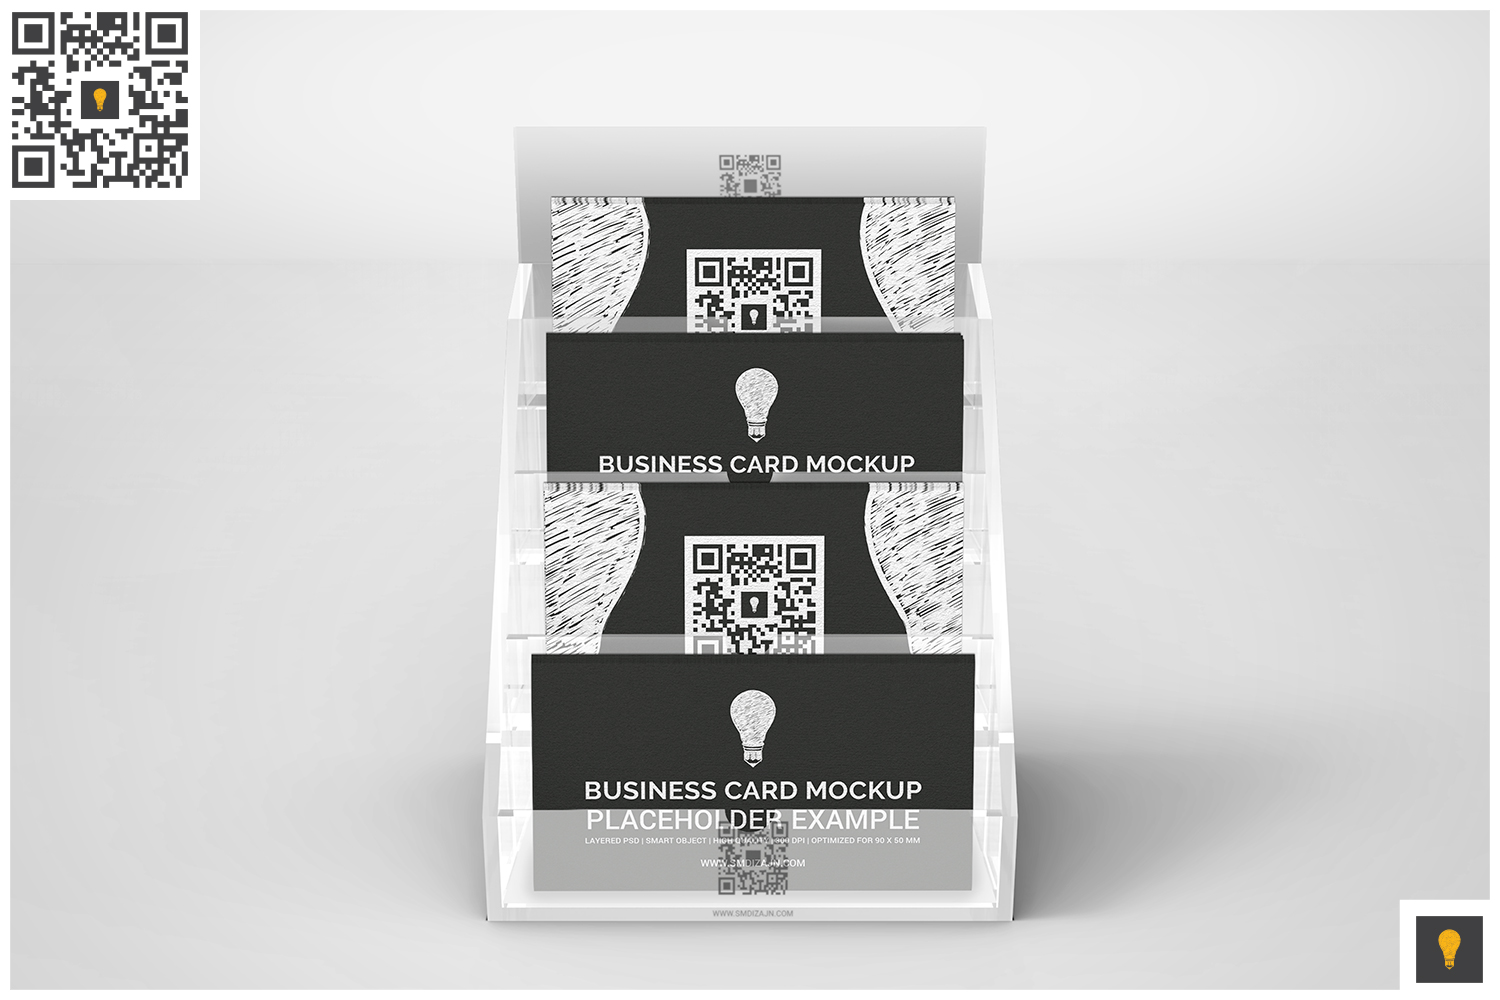 Business Card Holder Mockup example image 4